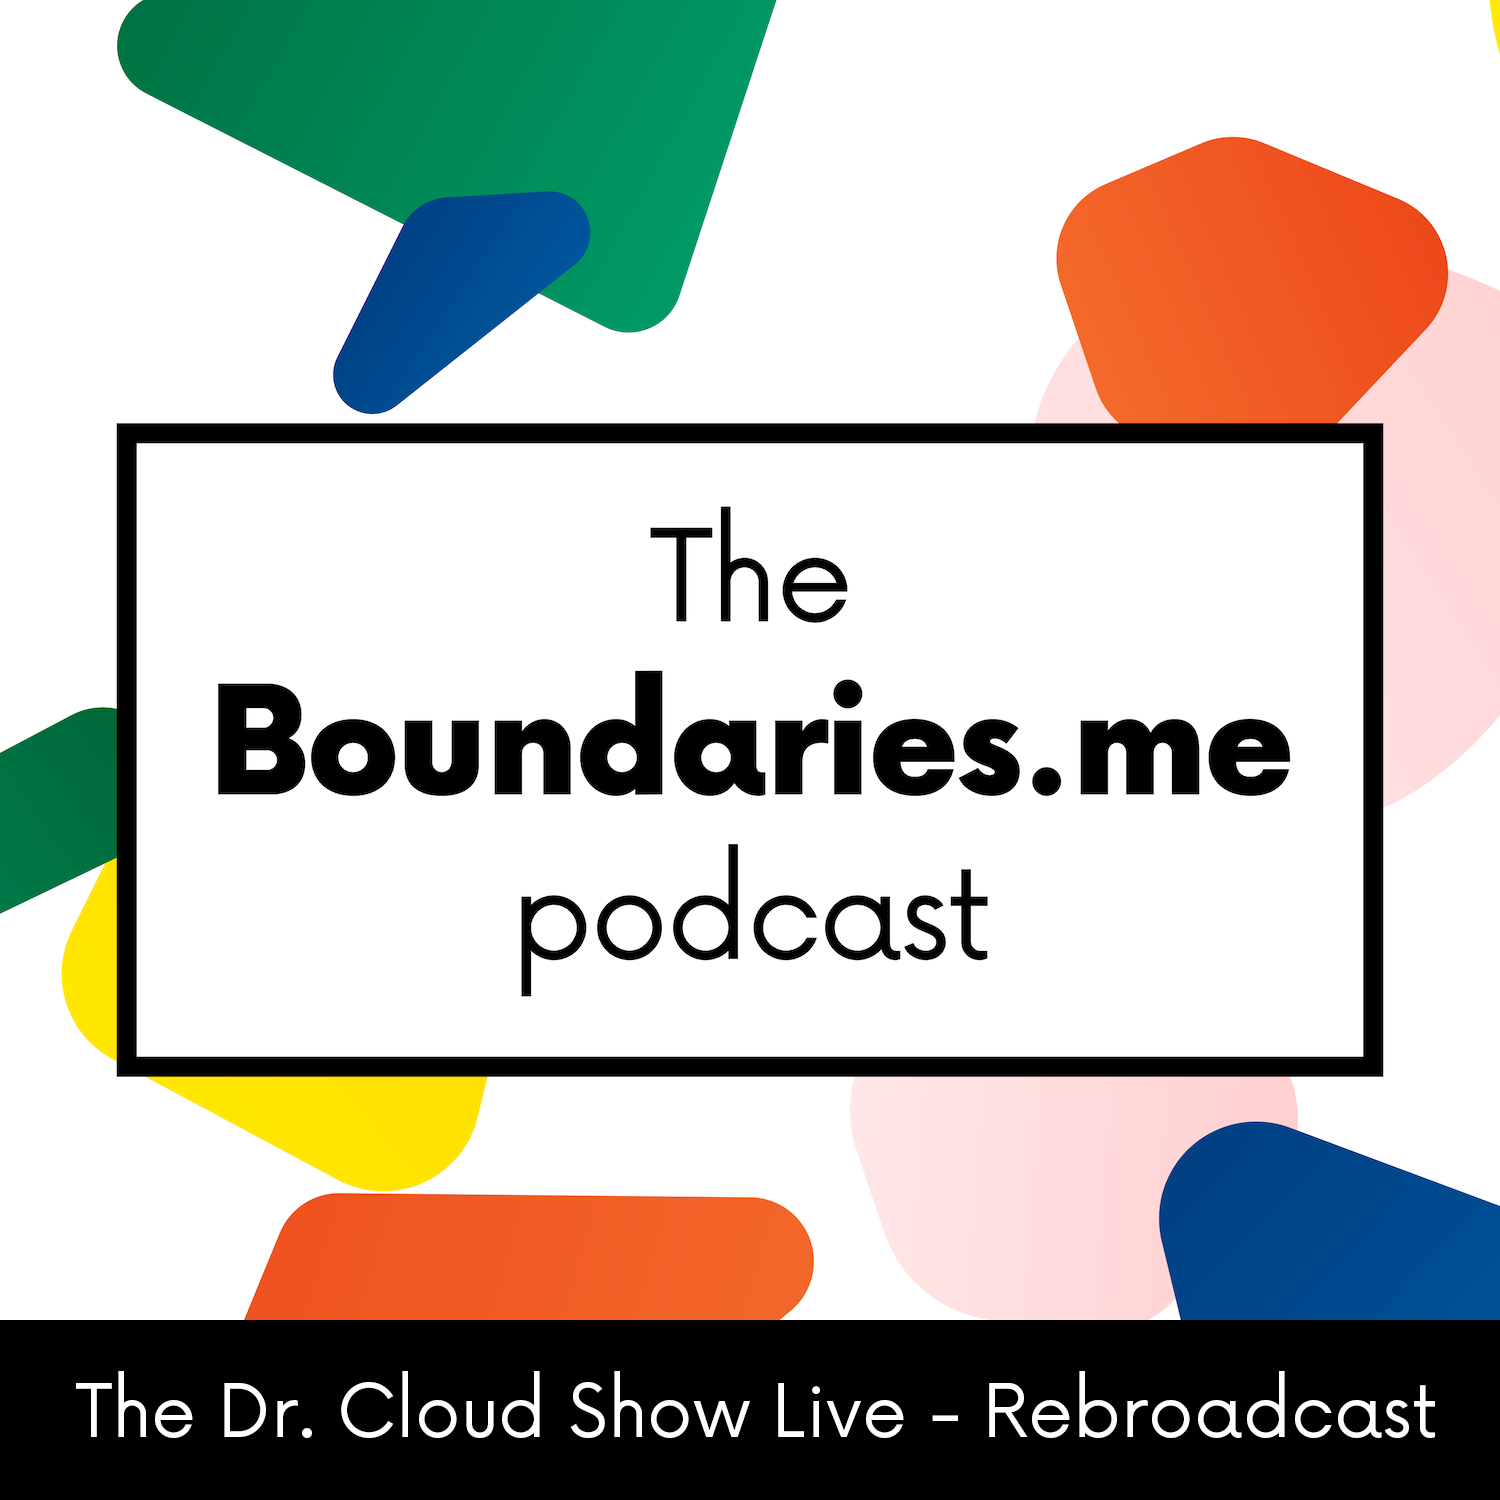 Episode 18 - The Dr Cloud Show Live - Mindfulness as a Practice